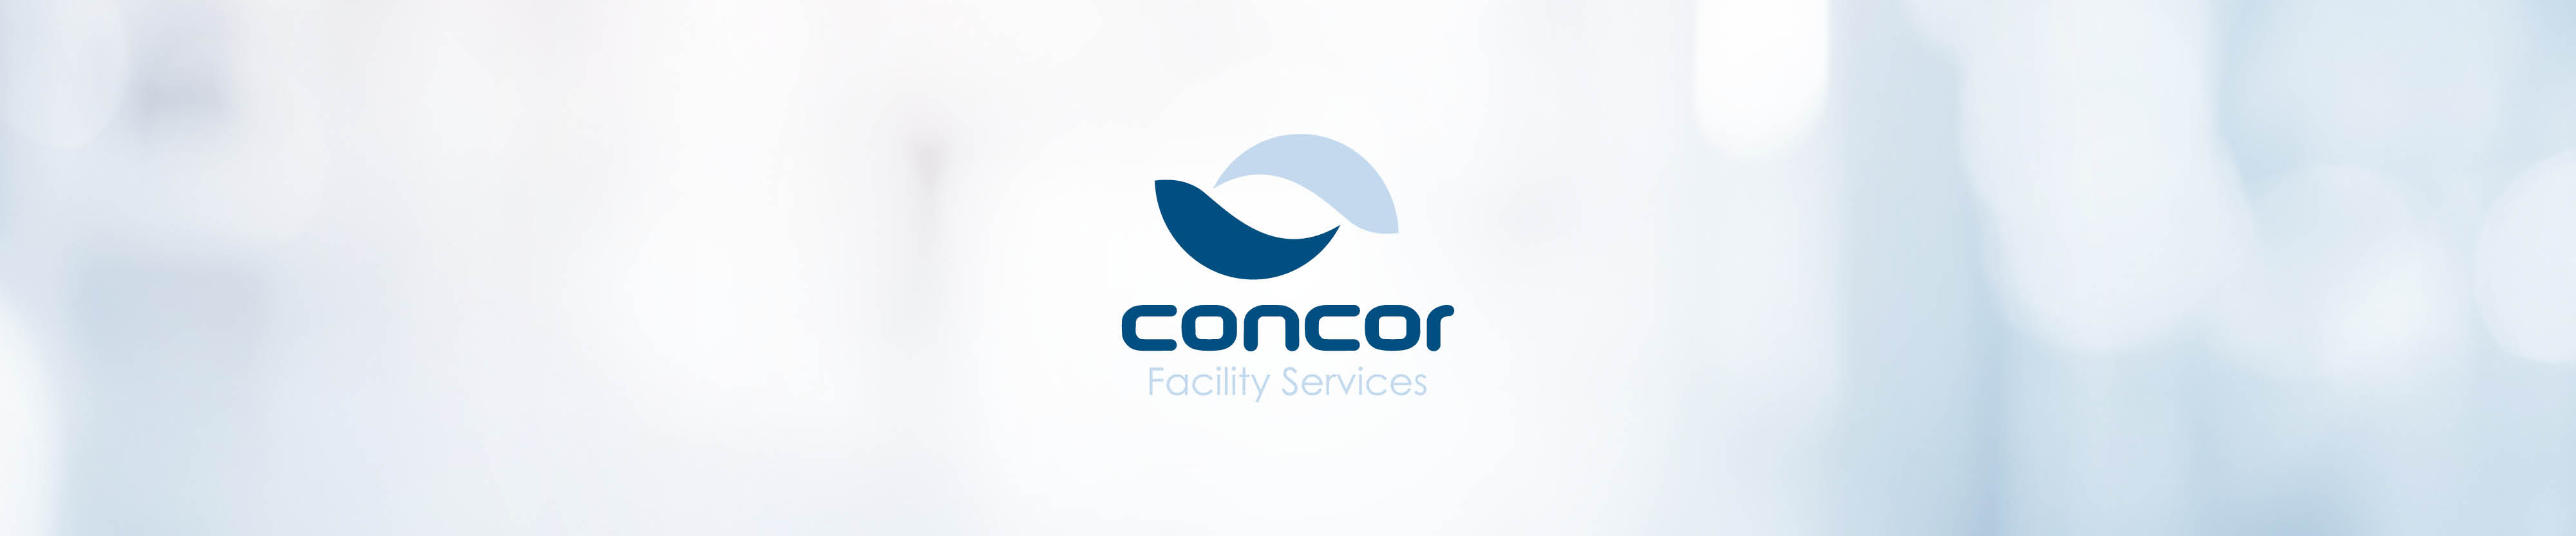 Concor Facility Services Contact Banner